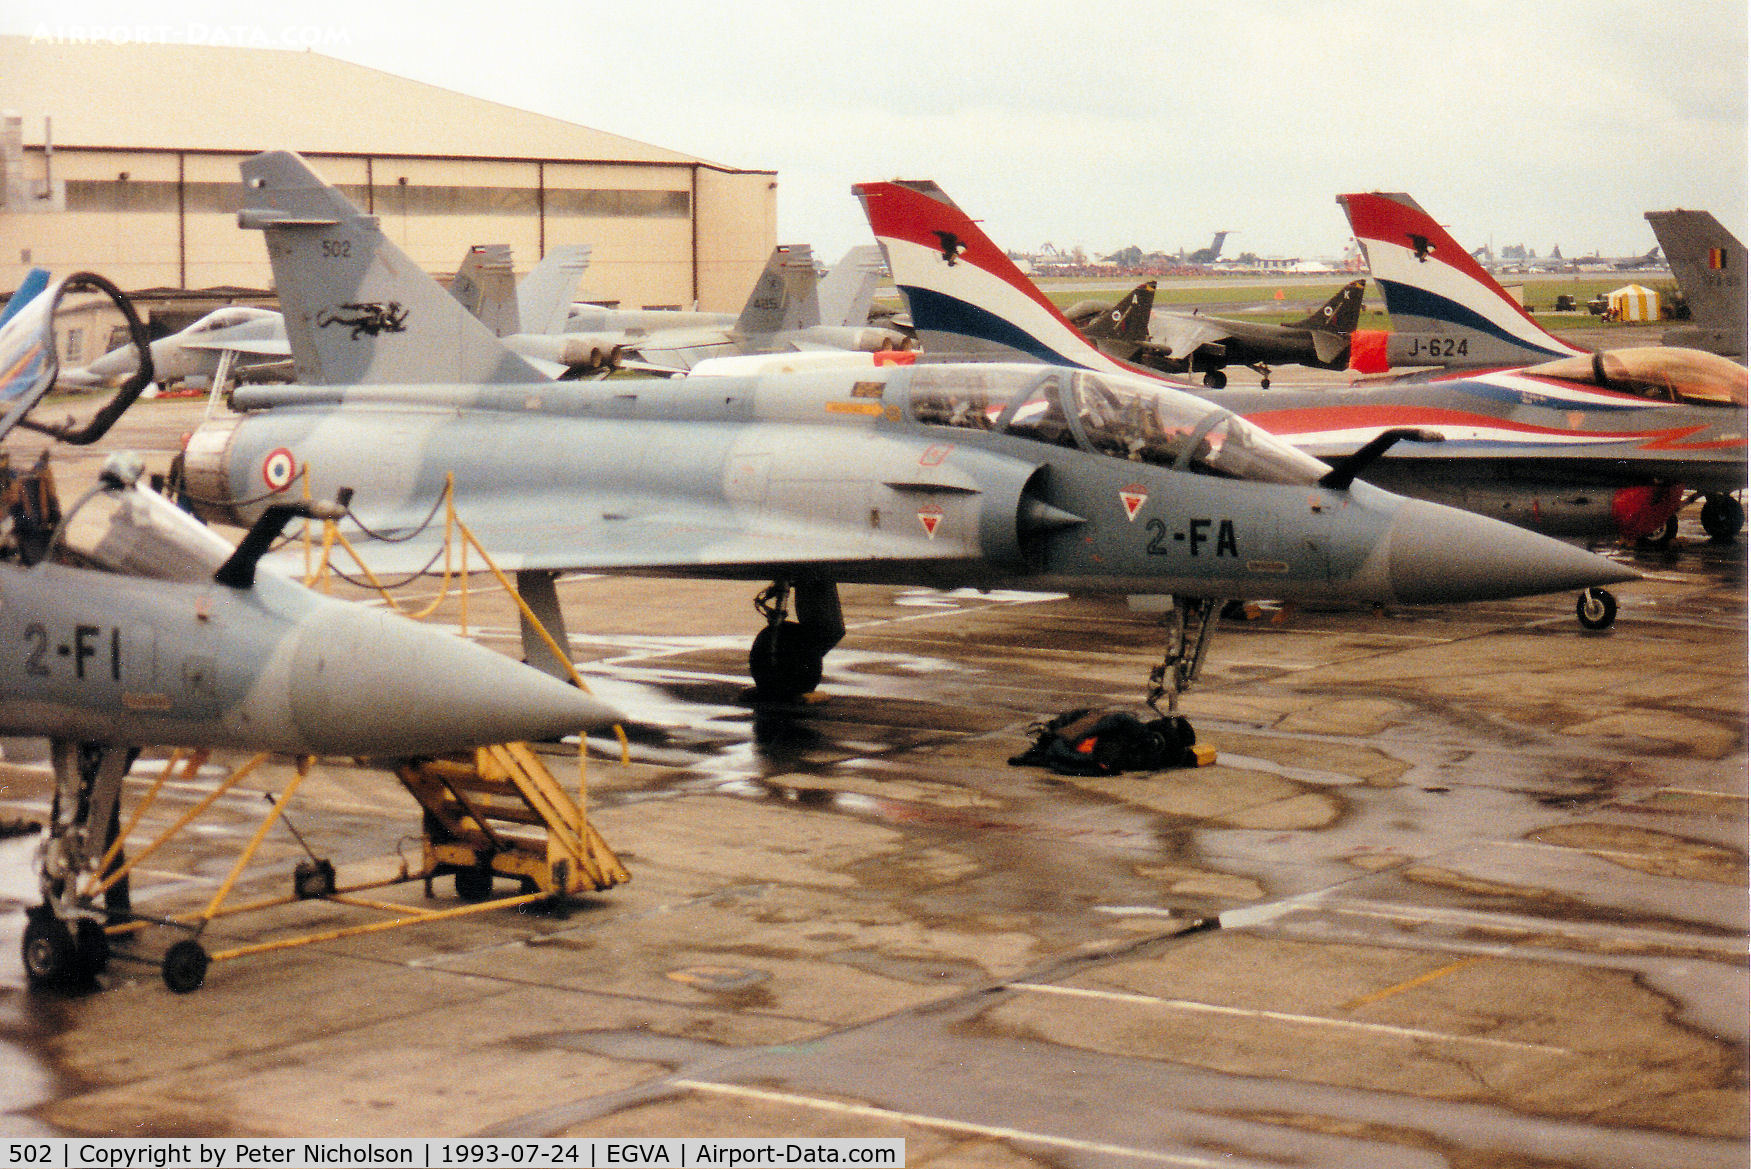 502, 1984 Dassault Mirage 2000B C/N 19, Mirage 2000B, callsign French Air Force 4200, of EC 2/2 on the flight-line at the 1993 Intnl Air Tattoo at RAF Fairford.